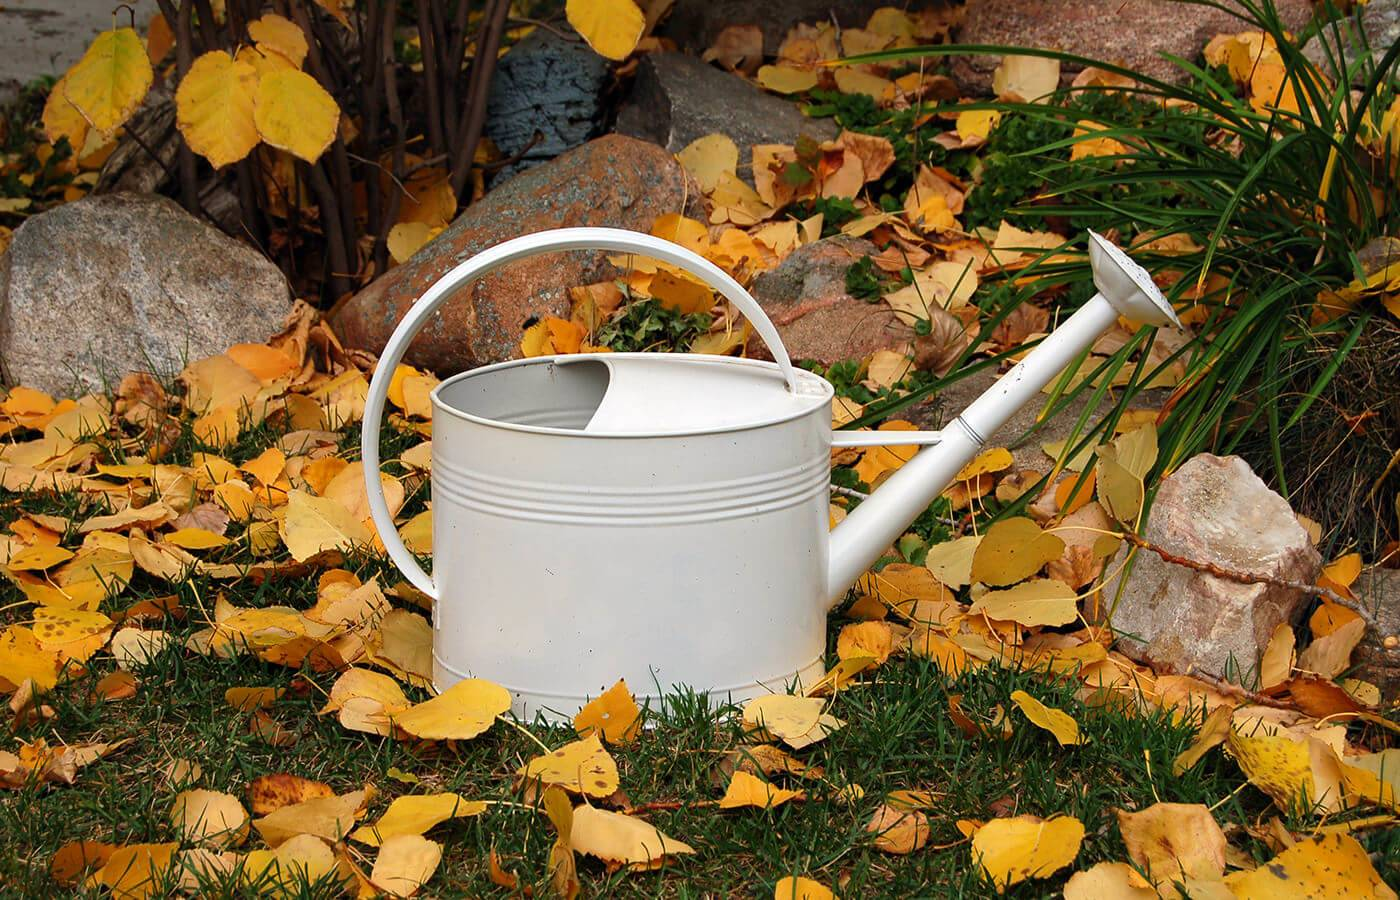 Gardening hints and tips as we approach autumn